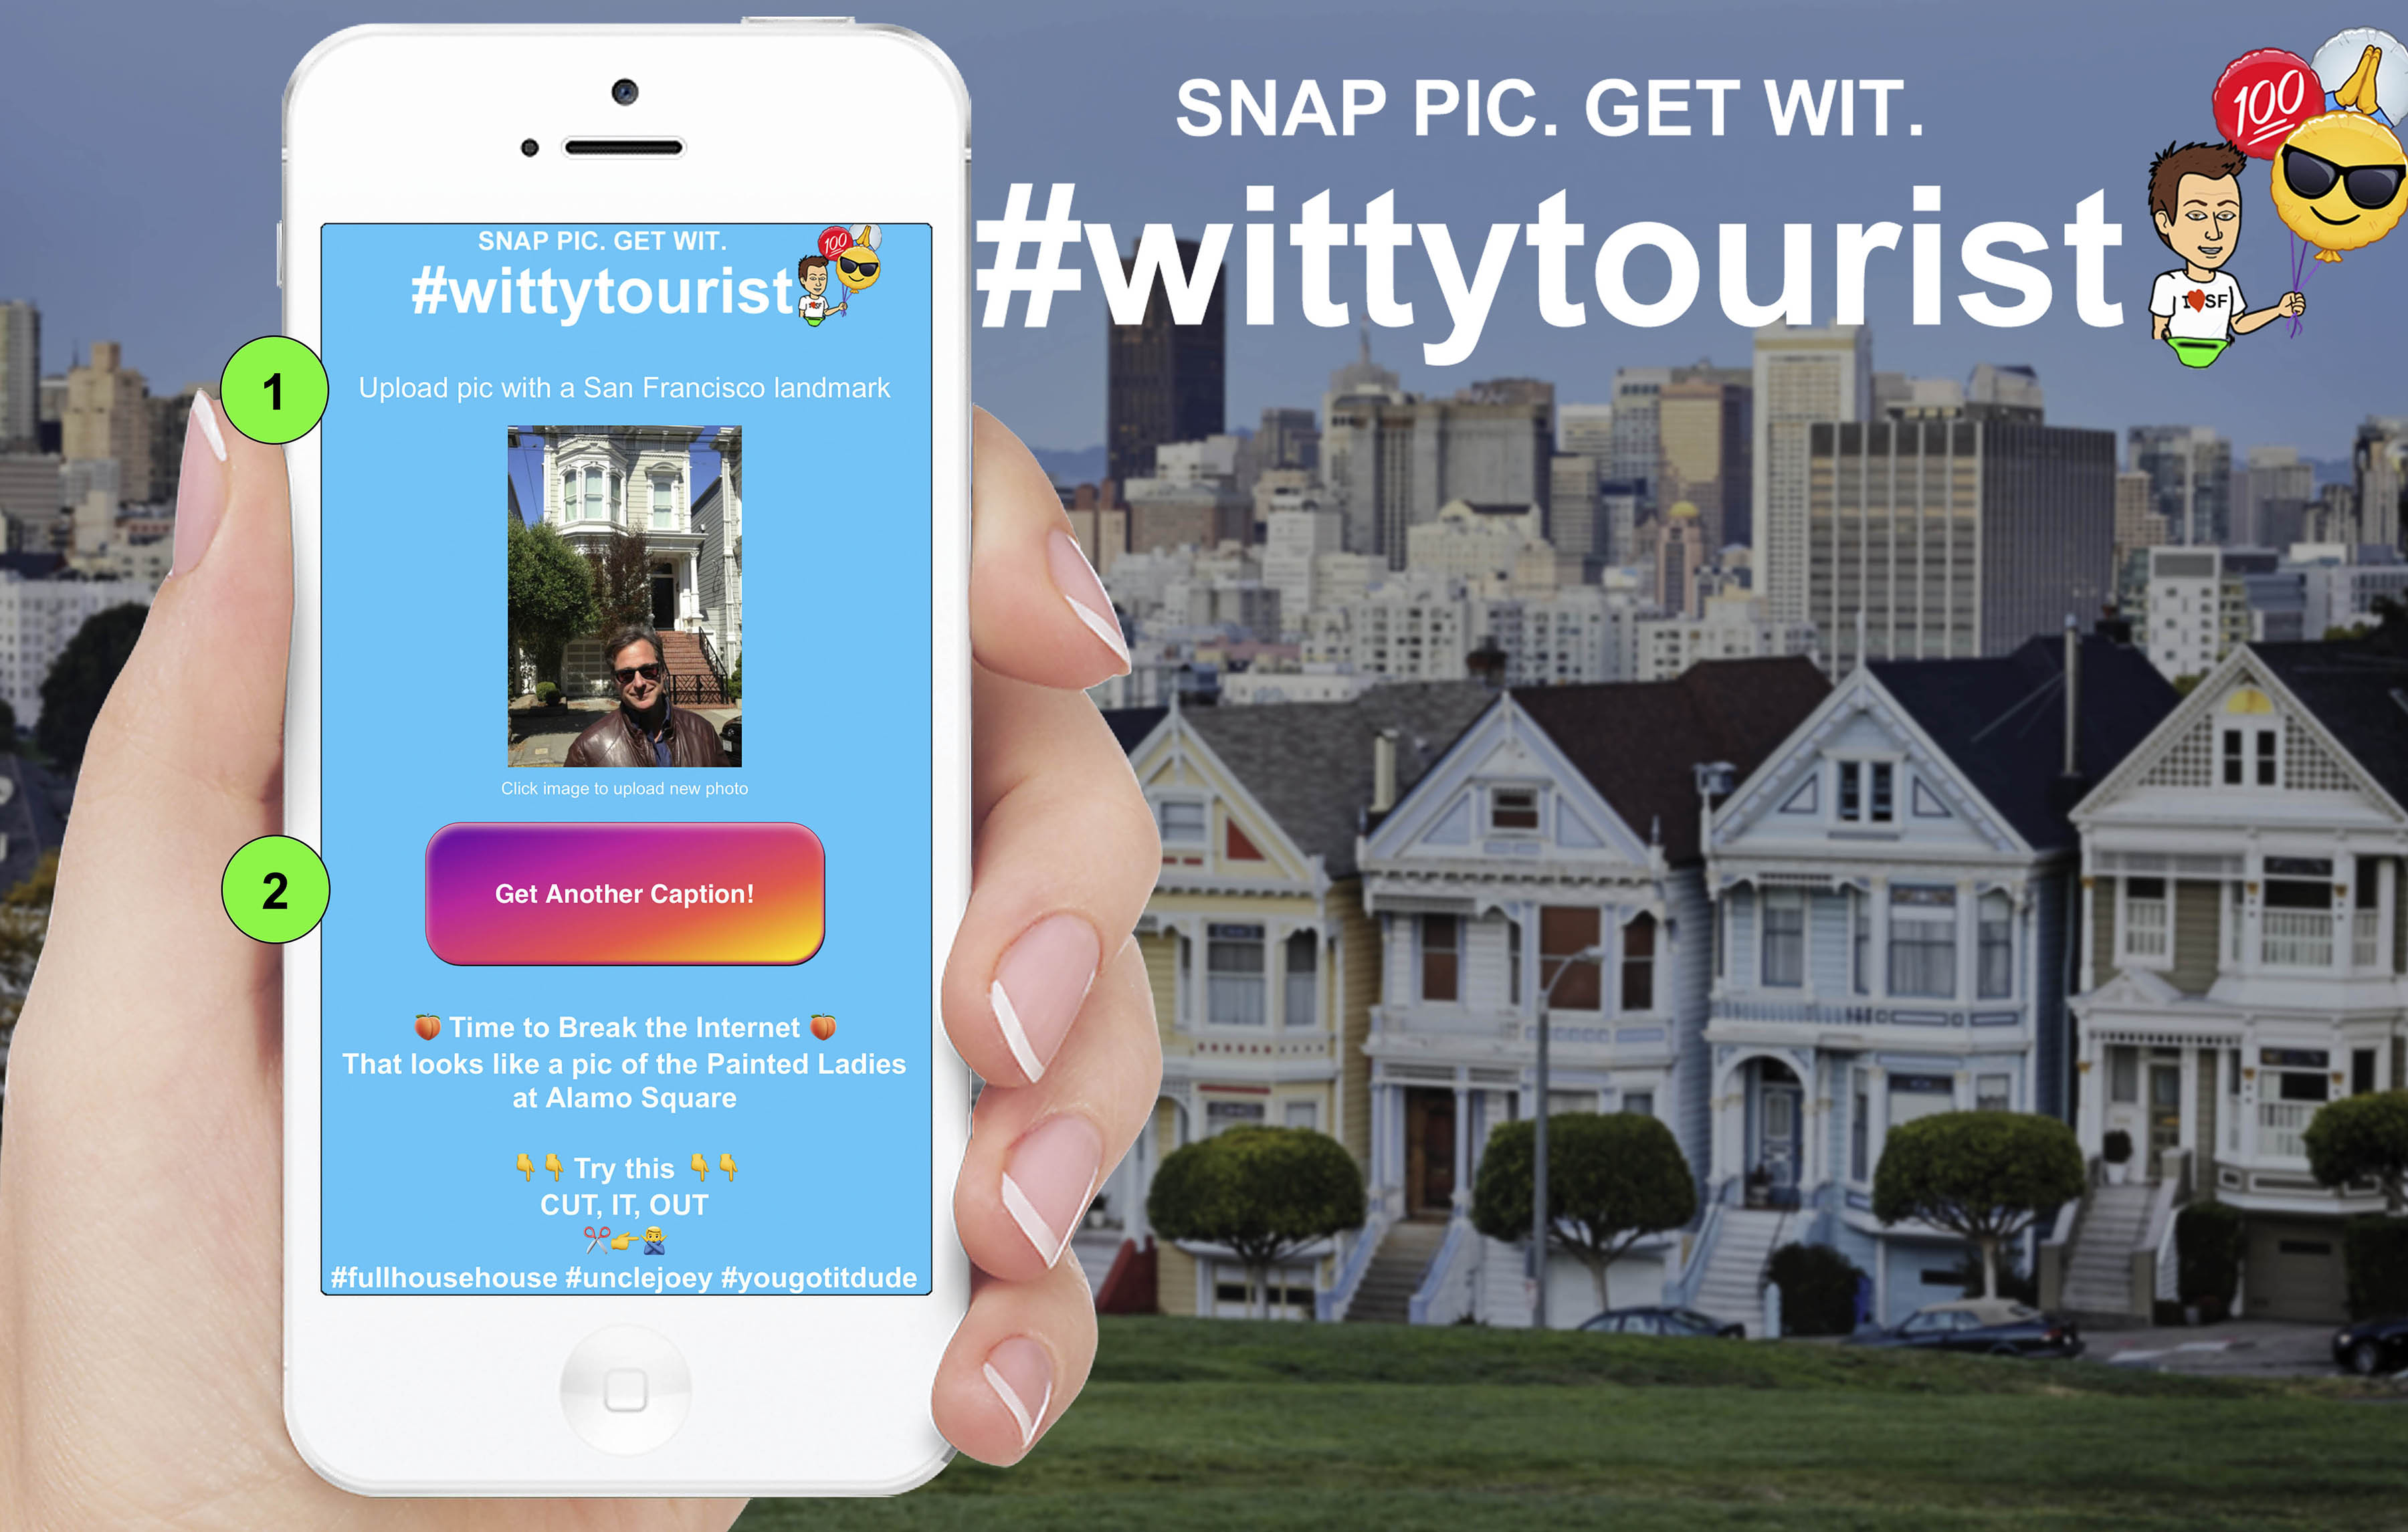 Snap Pic, Get Wit #wittytourist